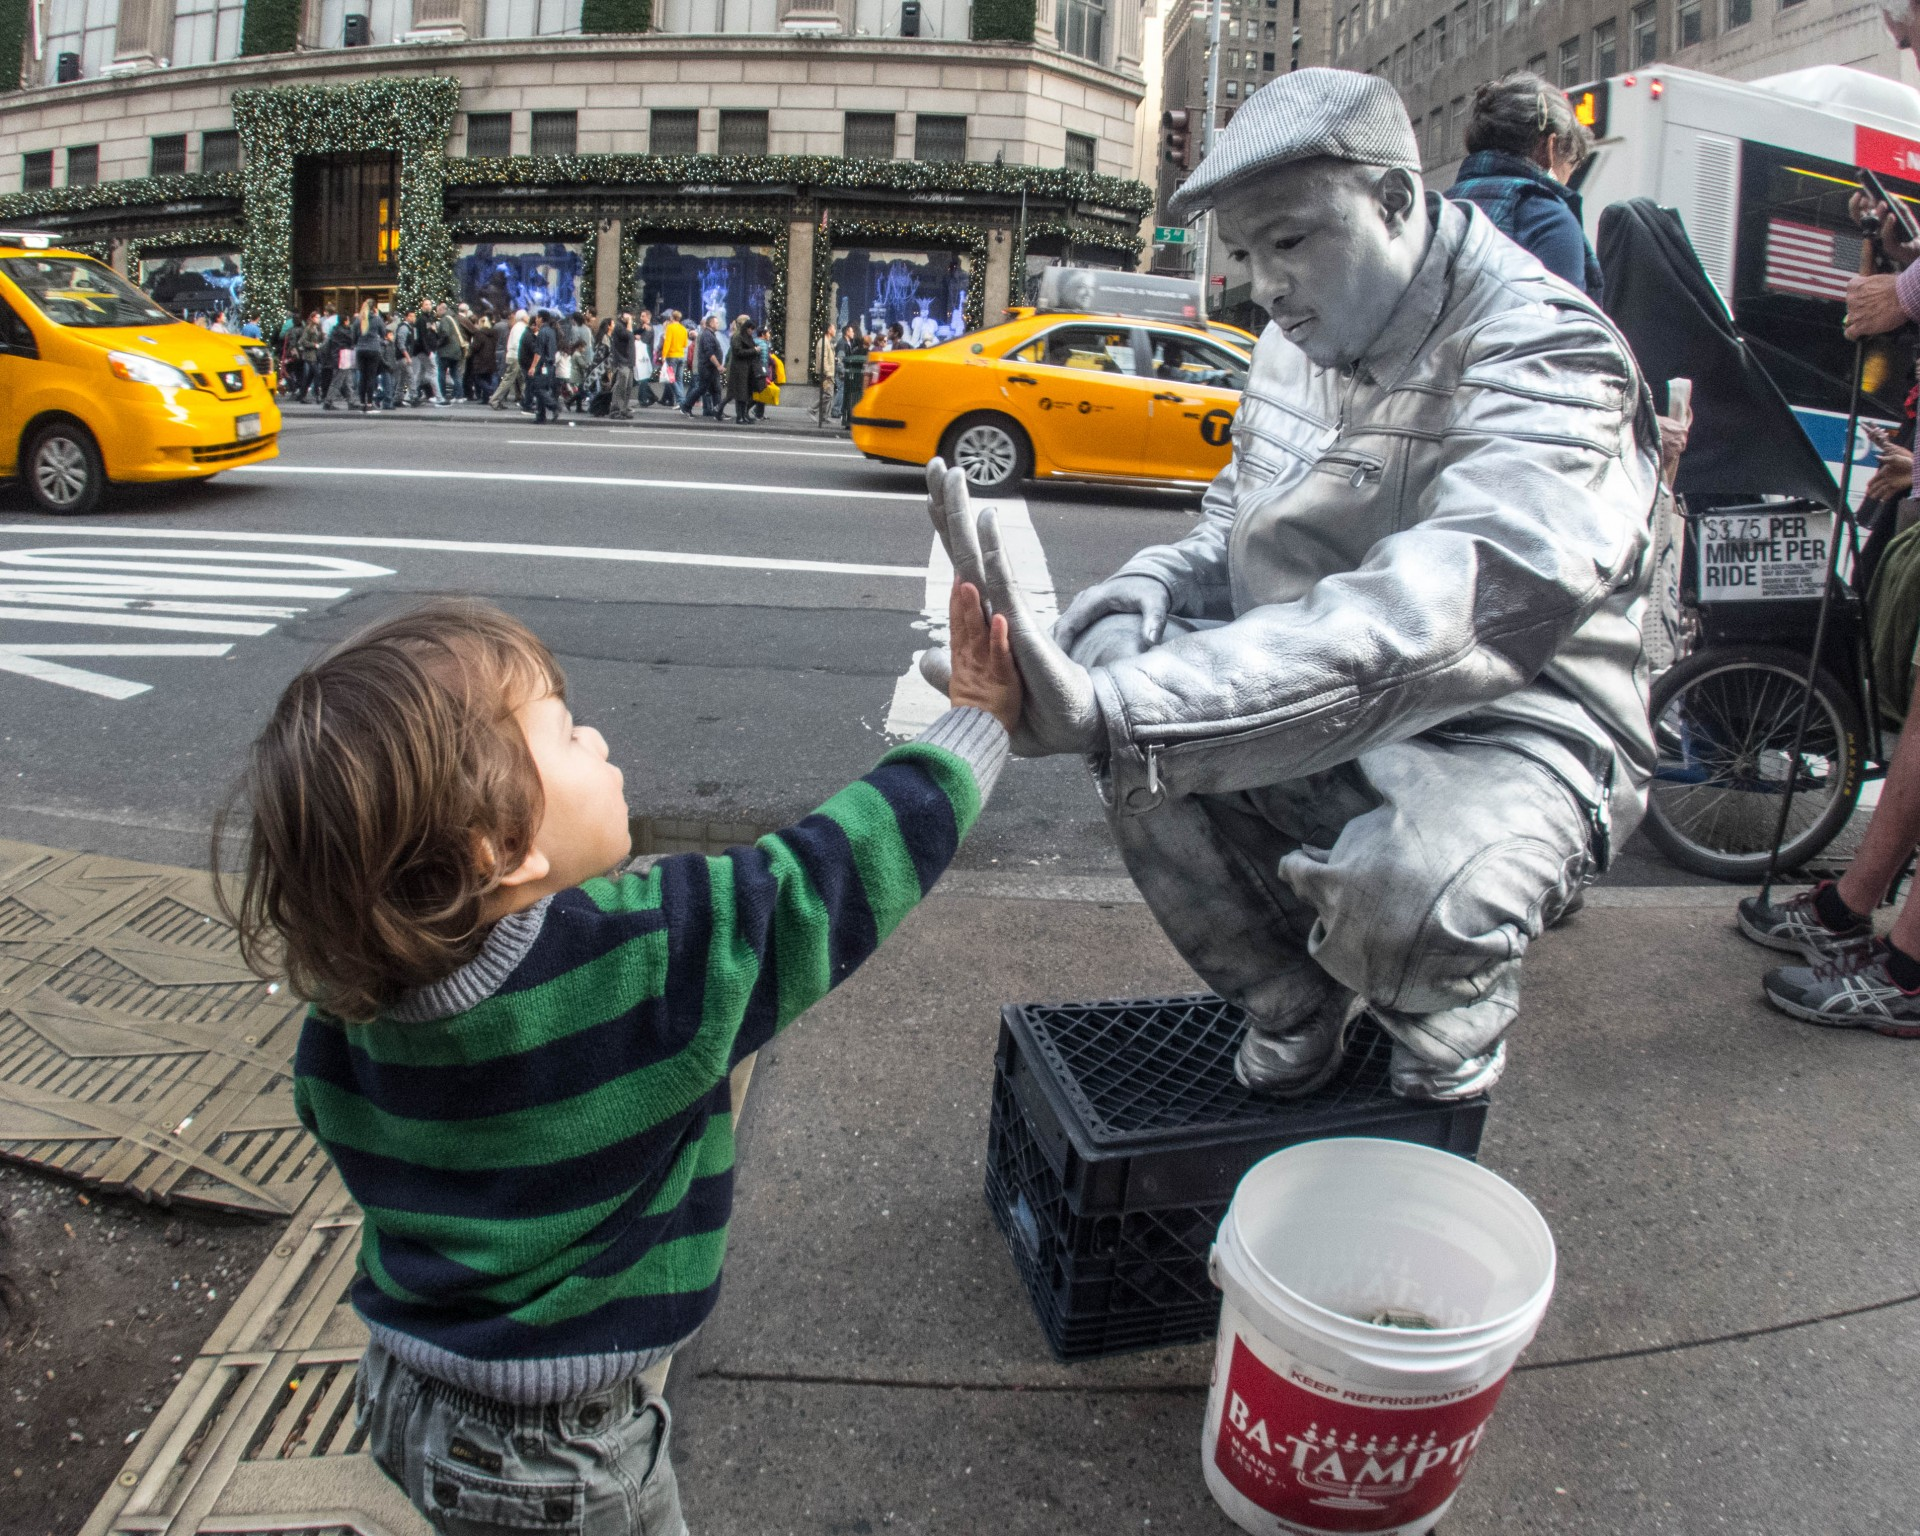 Young boy gives a high five to a street performer wearing silver body paint and a silver outfit